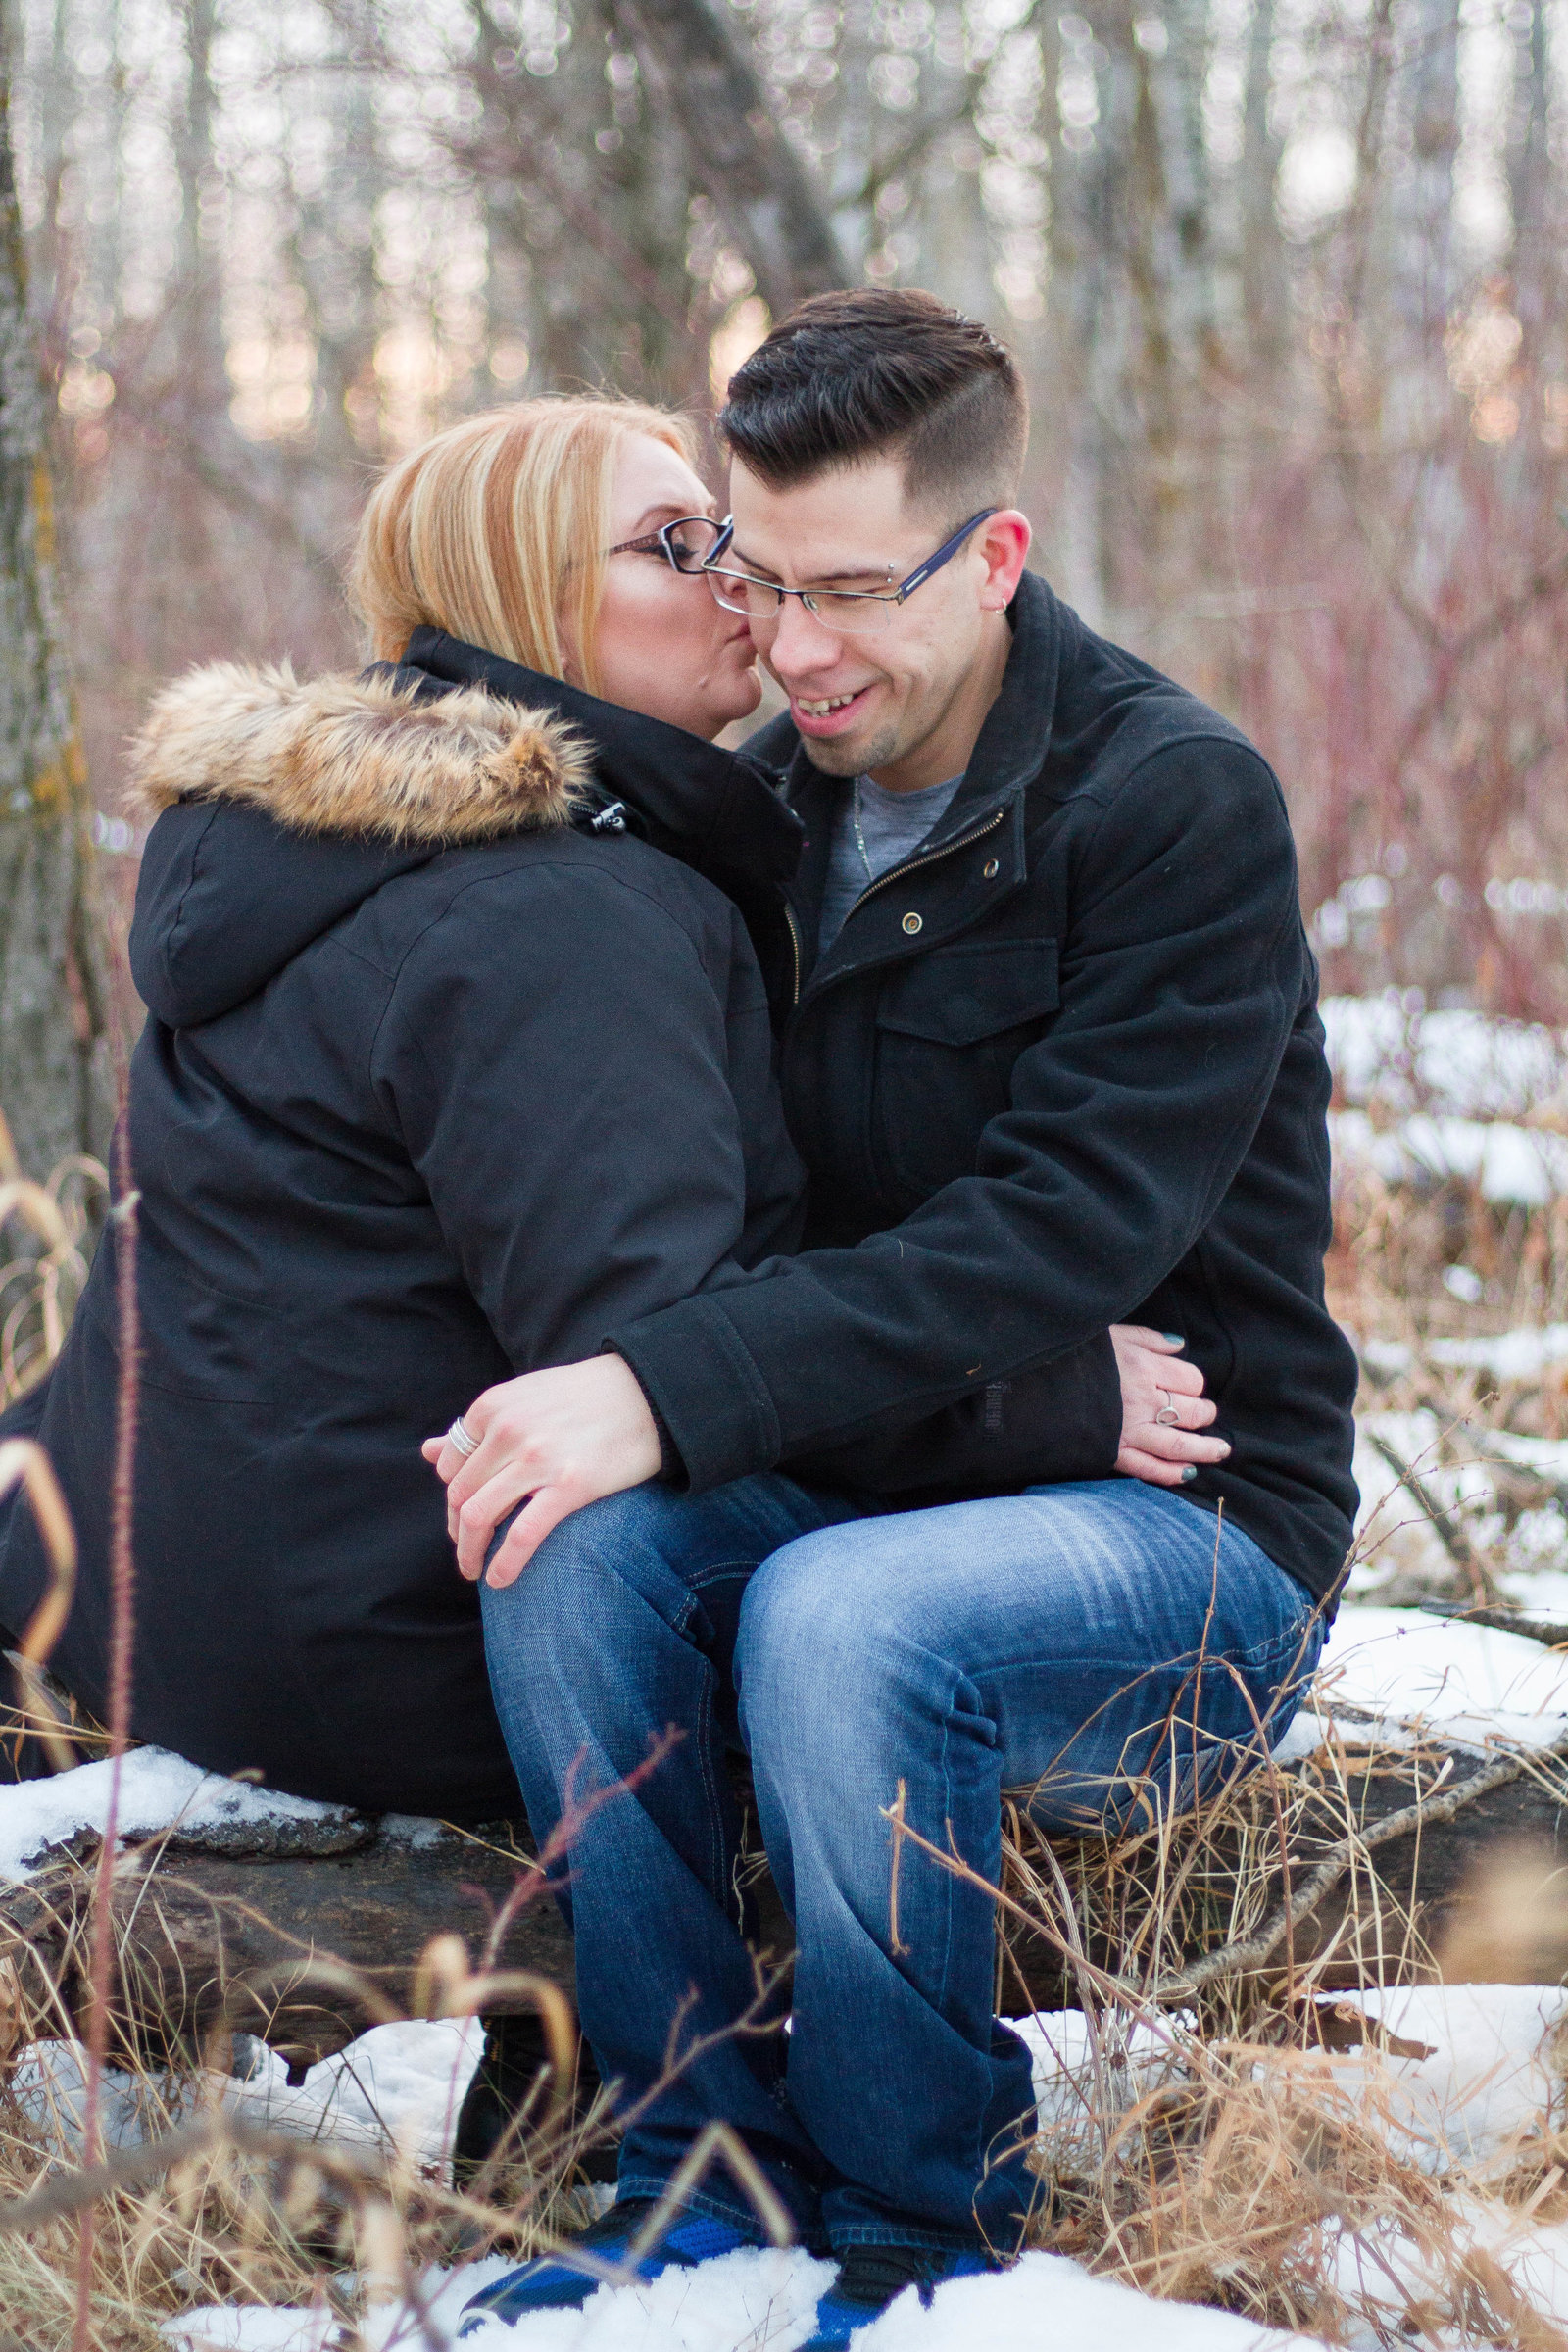 Stunning sunset intimate couple session in Alberta winter wonderland featuring birch trees and golden tones.